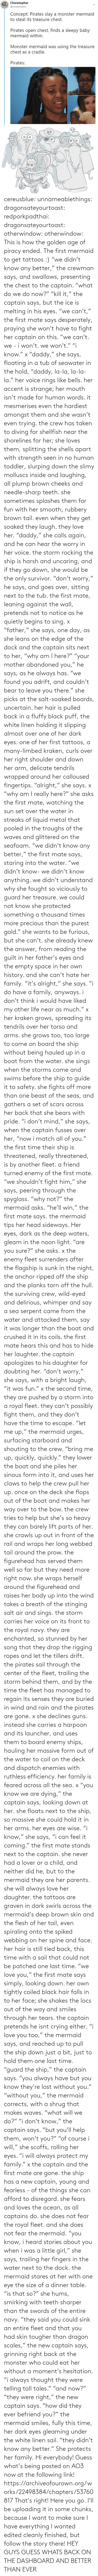 "Entire: cereusblue: unnameablethings:   dragonsateyourtoast:  redporkpadthai:  dragonsateyourtoast:  otherwindow:  otherwindow: This is how the golden age of piracy ended. The first mermaid to get tattoos :)   ""we didn't know any better,"" the crewman says, and swallows, presenting the chest to the captain. ""what do we do now?"" ""kill it,"" the captain says, but the ice is melting in his eyes. ""we can't,"" the first mate says desperately, praying she won't have to fight her captain on this. ""we can't. we - i won't. we won't."" ""i know."" x ""daddy,"" she says, floating in a tub of seawater in the hold, ""daddy, la-la, la-la-la."" her voice rings like bells. her accent is strange; her mouth isn't made for human words. it mesmerises even the hardiest amongst them and she wasn't even trying. the crew has taken to diving for shellfish near the shorelines for her; she loves them, splitting the shells apart with strength seen in no human toddler, slurping down the slimy molluscs inside and laughing, all plump brown cheeks and needle-sharp teeth. she sometimes splashes them for fun with her smooth, rubbery brown tail. even when they get soaked they laugh. they love her. ""daddy,"" she calls again, and he can hear the worry in her voice. the storm rocking the ship is harsh and uncaring, and if they go down, she would be the only survivor. ""don't worry,"" he says, and goes over, sitting next to the tub. the first mate, leaning against the wall, pretends not to notice as he quietly begins to sing. x ""father,"" she says, one day, as she leans on the edge of the dock and the captain sits next to her, ""why am I here?"" ""your mother abandoned you,"" he says, as he always has. ""we found you adrift, and couldn't bear to leave you there."" she picks at the salt-soaked boards, uncertain. her hair is pulled back in a fluffy black puff, the white linen holding it slipping almost over one of her dark eyes. one of her first tattoos, a many-limbed kraken, curls over her right shoulder and down her arm, delicate tendrils wrapped around her calloused fingertips. ""alright,"" she says. x ""why am I really here?"" she asks the first mate, watching the sun set over the water in streaks of liquid metal that pooled in the troughs of the waves and glittered on the seafoam. ""we didn't know any better,"" the first mate says, staring into the water. ""we didn't know- we didn't know anything. we didn't understand why she fought so viciously to guard her treasure. we could not know she protected something a thousand times more precious than the purest gold."" she wants to be furious, but she can't. she already knew the answer, from reading the guilt in her father's eyes and the empty space in her own history. and she can't hate her family. ""it's alright,"" she says. ""i do have a family, anyways. i don't think i would have liked my other life near as much."" x her kraken grows, spreading its tendrils over her torso and arms. she grows too, too large to come on board the ship without being hauled up in a boat from the water. she sings when the storms come and swims before the ship to guide it to safety. she fights off more than one beast of the seas, and gathers a set of scars across her back that she bears with pride. ""i don't mind,"" she says, when the captain fusses over her, ""now i match all of you."" the first time their ship is threatened, really threatened, is by another fleet. a friend turned enemy of the first mate. ""we shouldn't fight him,"" she says, peering through the spyglass. ""why not?"" the mermaid asks. ""he'll win,"" the first mate says. the mermaid tips her head sideways. Her eyes, dark as the deep waters, gleam in the noon light. ""are you sure?"" she asks. x the enemy fleet surrenders after the flagship is sunk in the night, the anchor ripped off the ship and the planks torn off the hull. the surviving crew, wild-eyed and delirious, whimper and say a sea serpent came from the water and attacked them, say it was longer than the boat and crushed it in its coils. the first mate hears this and has to hide her laughter. the captain apologizes to his daughter for doubting her. ""don't worry,"" she says, with a bright laugh, ""it was fun."" x the second time, they are pushed by a storm into a royal fleet. they can't possibly fight them, and they don't have the time to escape. ""let me up,"" the mermaid urges, surfacing starboard and shouting to the crew. ""bring me up, quickly, quickly."" they lower the boat and she piles her sinous form into it, and uses her claws to help the crew pull her up. once on the deck she flops out of the boat and makes her way over to the bow. the crew tries to help but she's so heavy they can barely lift parts of her. she crawls up out in front of the rail and wraps her long webbed tail around the prow. the figurehead has served them well so far but they need more right now. she wraps herself around the figurehead and raises her body up into the wind takes a breath of the stinging salt air and sings. the storm carries her voice on its front to the royal navy. they are enchanted, so stunned by her song that they drop the rigging ropes and let the tillers drift. the pirates sail through the center of the fleet, trailing the storm behind them, and by the time the fleet has managed to regain its senses they are buried in wind and rain and the pirates are gone. x she declines guns. instead she carries a harpoon and its launcher, and uses them to board enemy ships, hauling her massive form out of the water to coil on the deck and dispatch enemies with ruthless efficiency. her family is feared across all the sea. x ""you know we are dying,"" the captain says, looking down at her. she floats next to the ship, so massive she could hold it in her arms. her eyes are wise. ""i know,"" she says, ""i can feel it coming."" the first mate stands next to the captain. she never had a lover or a child, and neither did he, but to the mermaid they are her parents. she will always love her daughter. the tattoos are graven in dark swirls across the mermaid's deep brown skin and the flesh of her tail, even spiraling onto the spiked webbing on her spine and face. her hair is still tied back, this time with a sail that could not be patched one last time.  ""we love you,"" the first mate says simply, looking down. her own tightly coiled black hair falls in to her face; she shakes the locs out of the way and smiles through her tears. the captain pretends he isnt crying either. ""i love you too,"" the mermaid says, and reached up to pull the ship down just a bit, just to hold them one last time. ""guard the ship,"" the captain says. ""you always have but you know they're lost without you."" ""without you,"" the mermaid corrects, with a shrug that makes waves. ""what will we do?"" ""i don't know,"" the captain says. ""but you'll help them, won't you?"" ""of course i will,"" she scoffs, rolling her eyes. ""i will always protect my family."" x the captain and the first mate are gone. the ship has a new captain, young and fearless - of the things she can afford to disregard. she fears and loves the ocean, as all captains do. she does not fear the royal fleet. and she does not fear the mermaid. ""you know, i heard stories about you when i was a little girl,"" she says, trailing her fingers in the water next to the dock. the mermaid stares at her with one eye the size of a dinner table. ""is that so?"" she hums, smirking with teeth sharper than the swords of the entire navy. ""they said you could sink an entire fleet and that you had skin tougher than dragon scales,"" the new captain says, grinning right back at the monster who could eat her without a moment's hesitation. ""i always thought they were telling tall tales."" ""and now?"" ""they were right,"" the new captain says. ""how did they ever befriend you?"" the mermaid smiles, fully this time, her dark eyes gleaming under the white linen sail. ""they didn't know any better.""  She protects her family.  Hi everybody! Guess what's being posted on AO3 now at the following link! https://archiveofourown.org/works/22498384/chapters/53760817 That's right! Here you go. I'll be uploading it in some chunks, because I want to make sure I have everything I wanted edited cleanly finished, but follow the story there!     HEY GUYS GUESS WHATS BACK ON THE DASHBOARD AND BETTER THAN EVER"